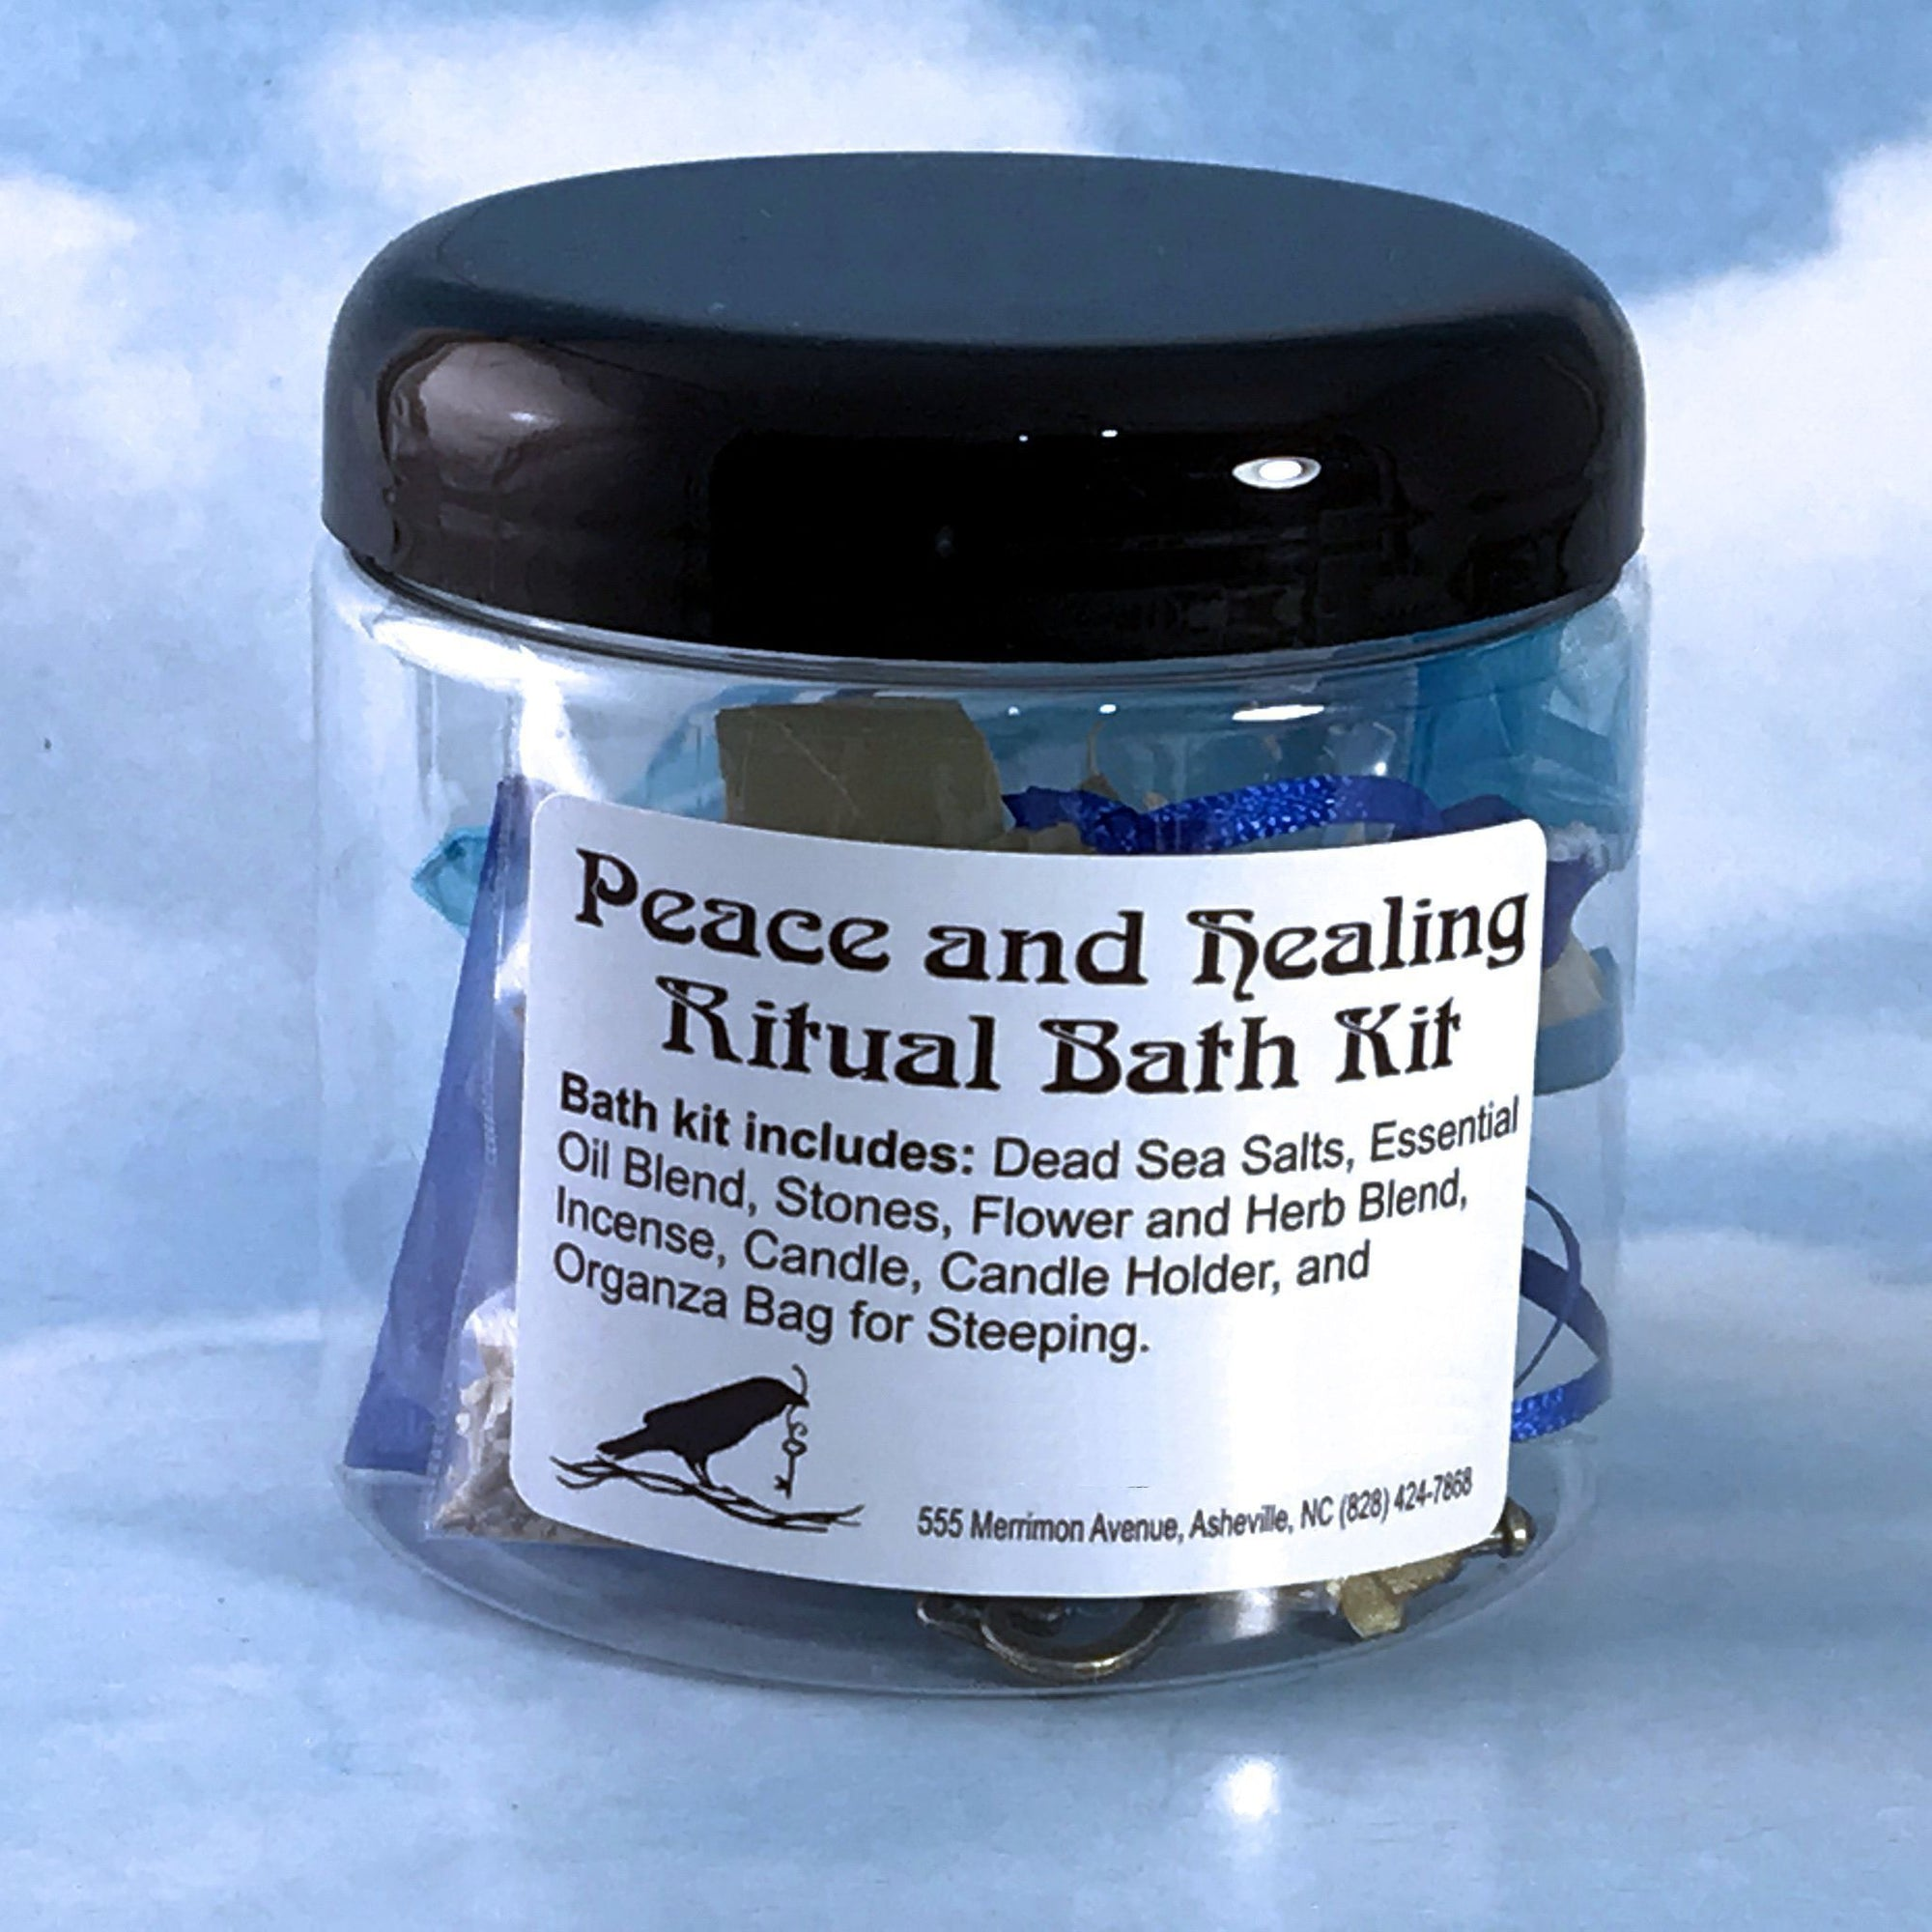 Peace and Healing Ritual Bath Kit